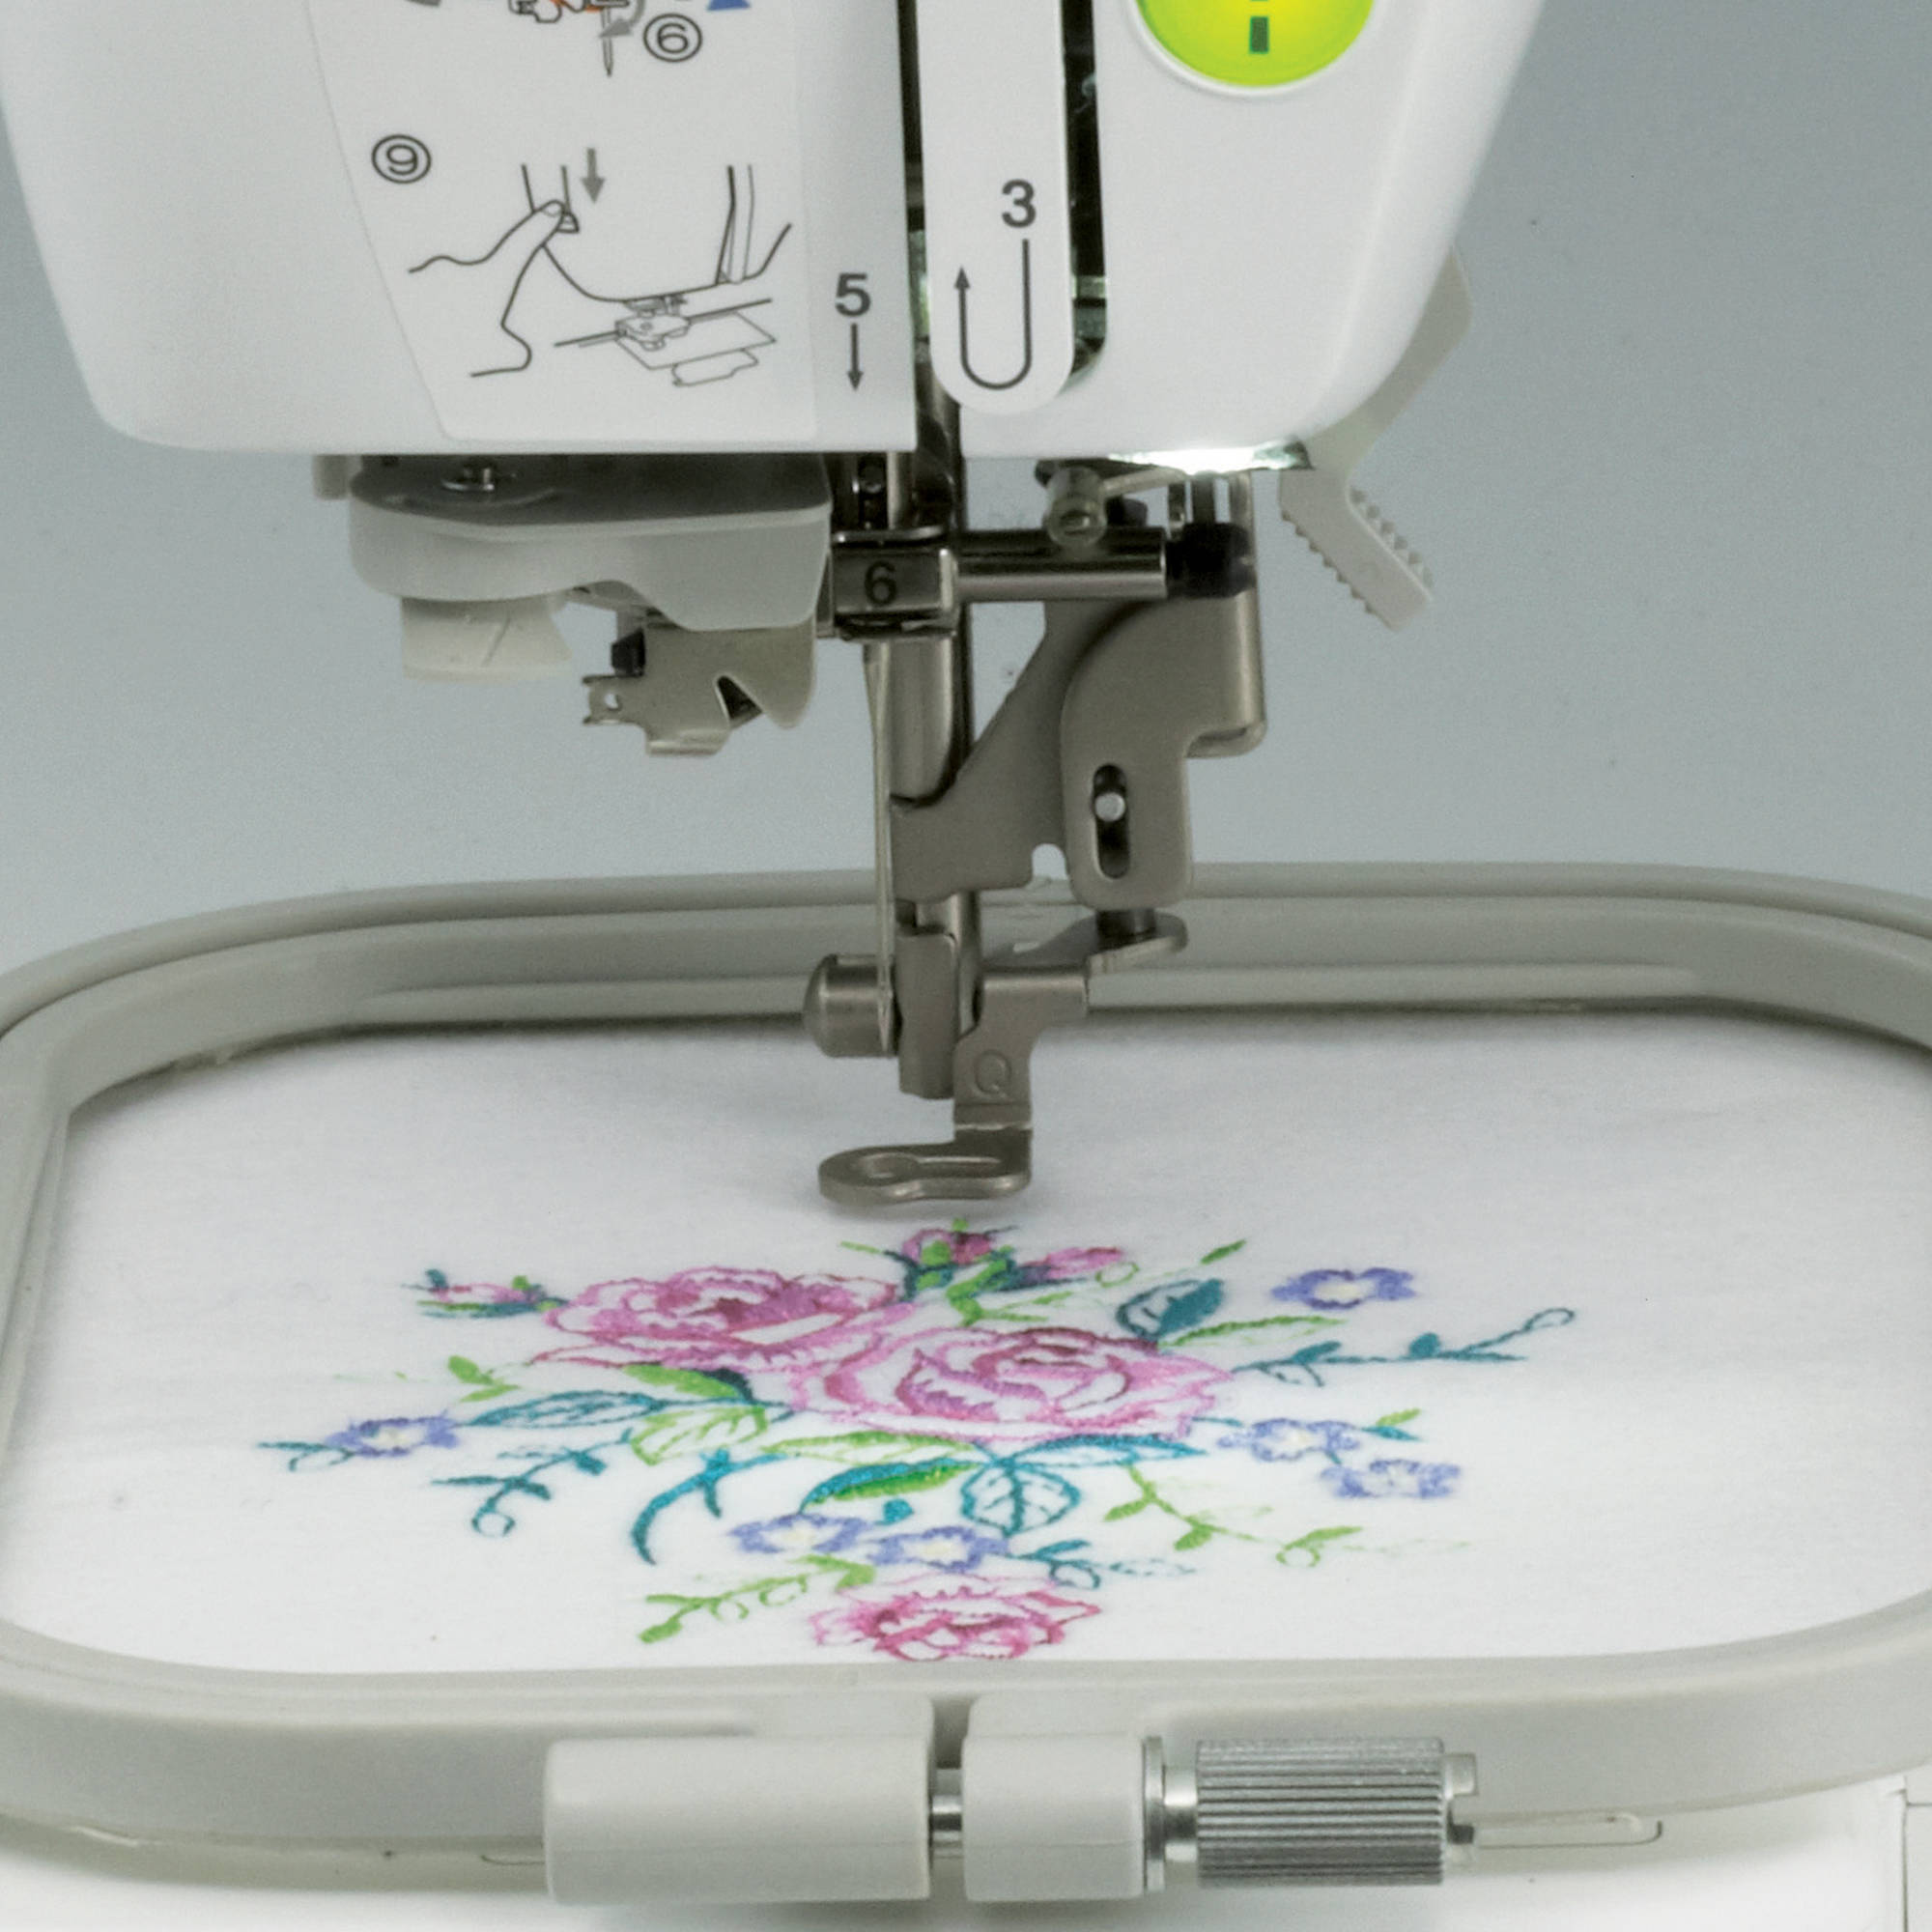 brother lx 3125 sewing machine manual